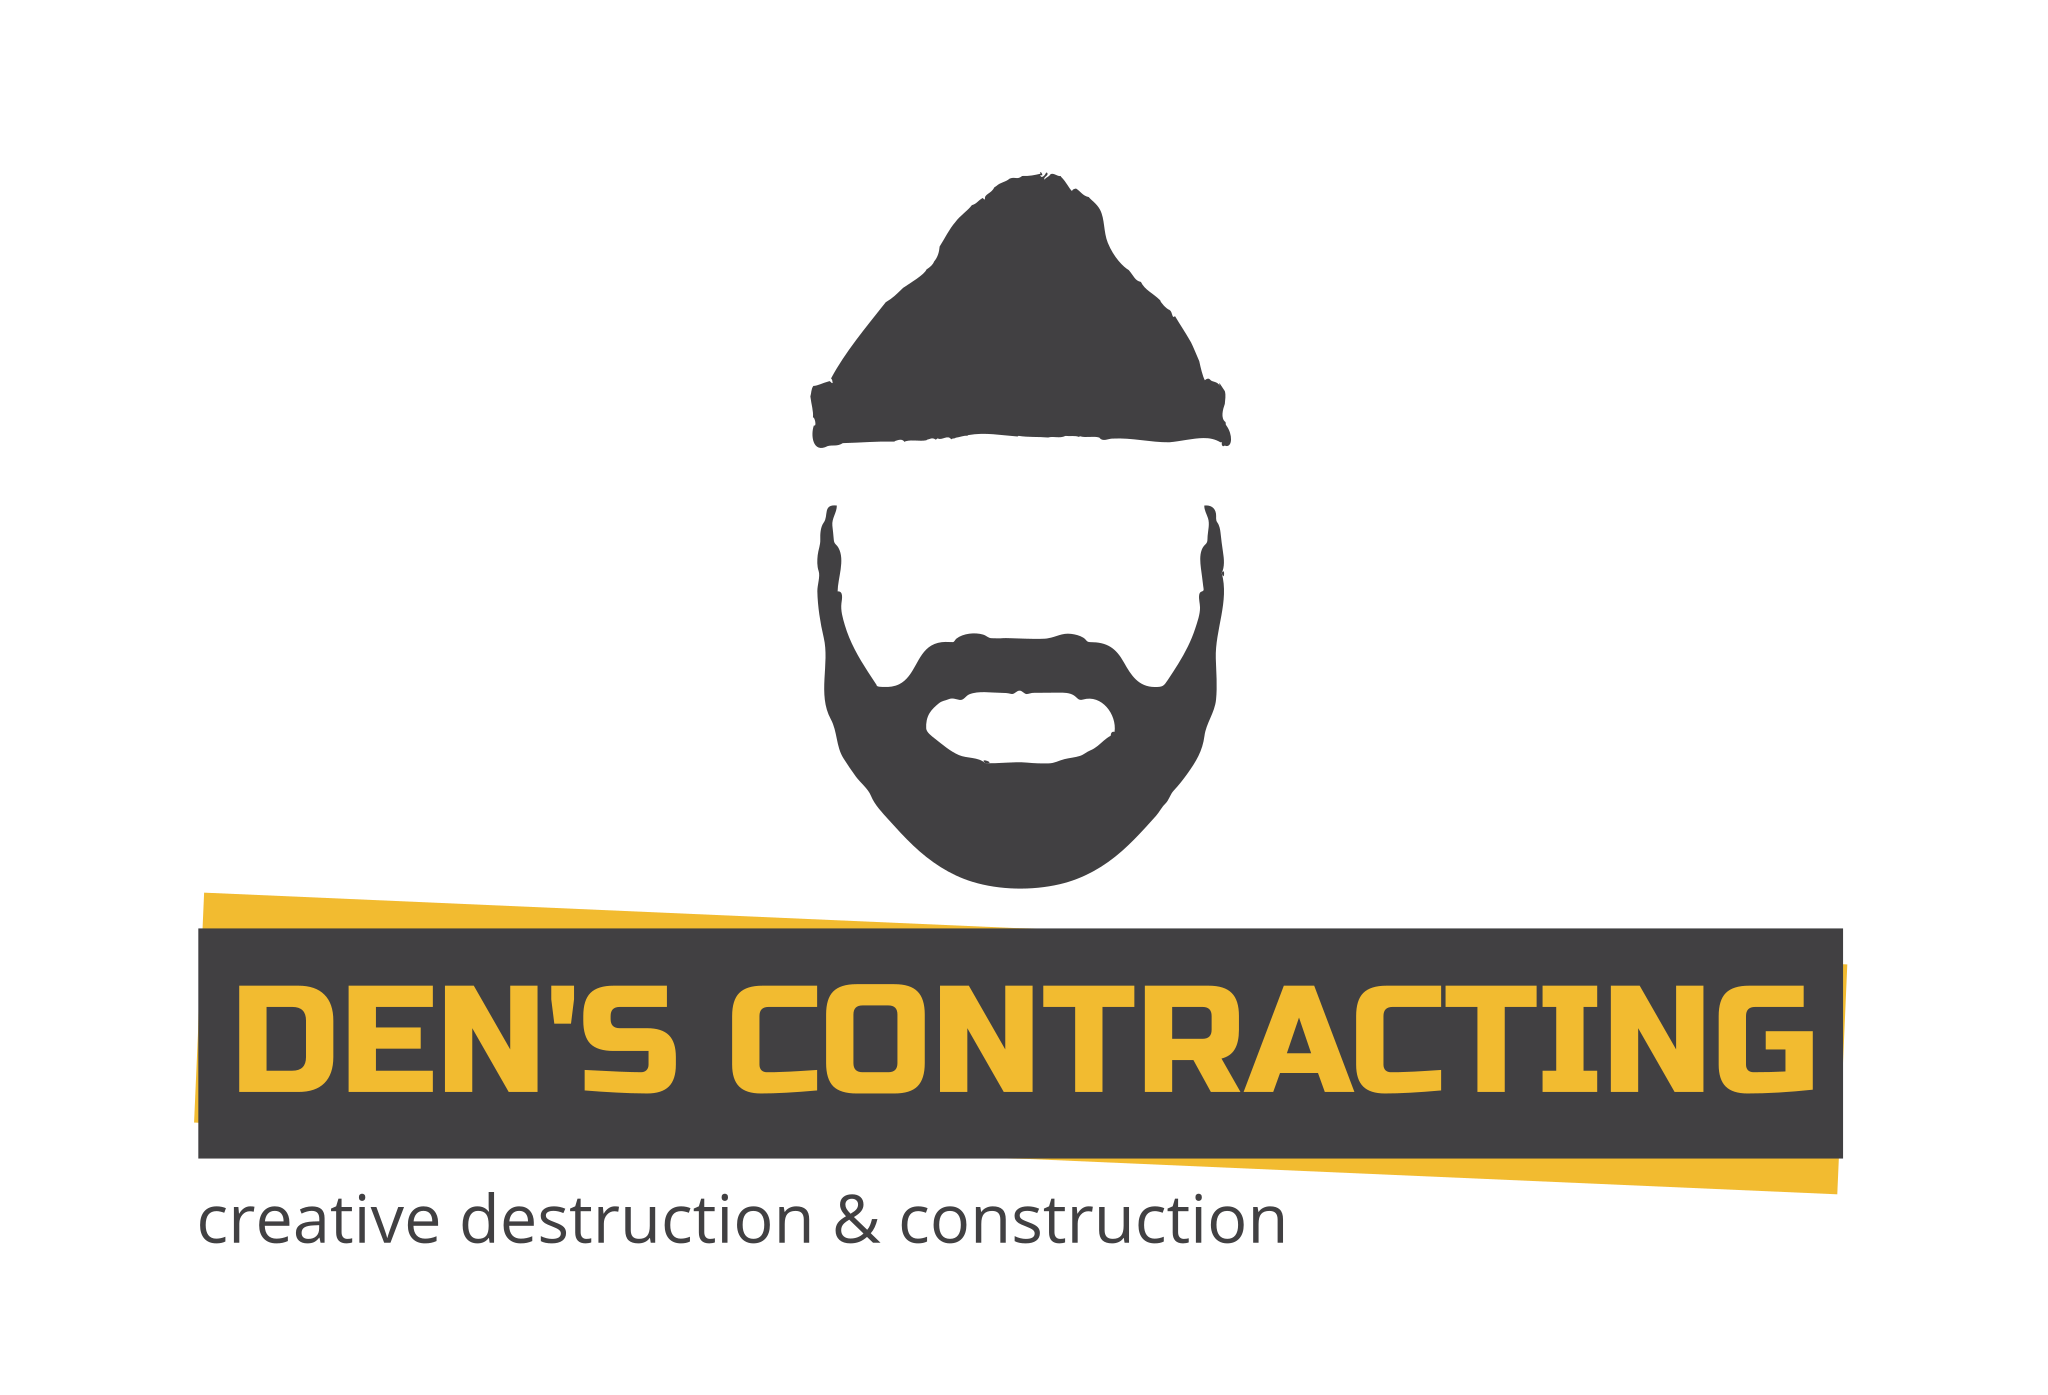 DEN'S CONTRACTING logo